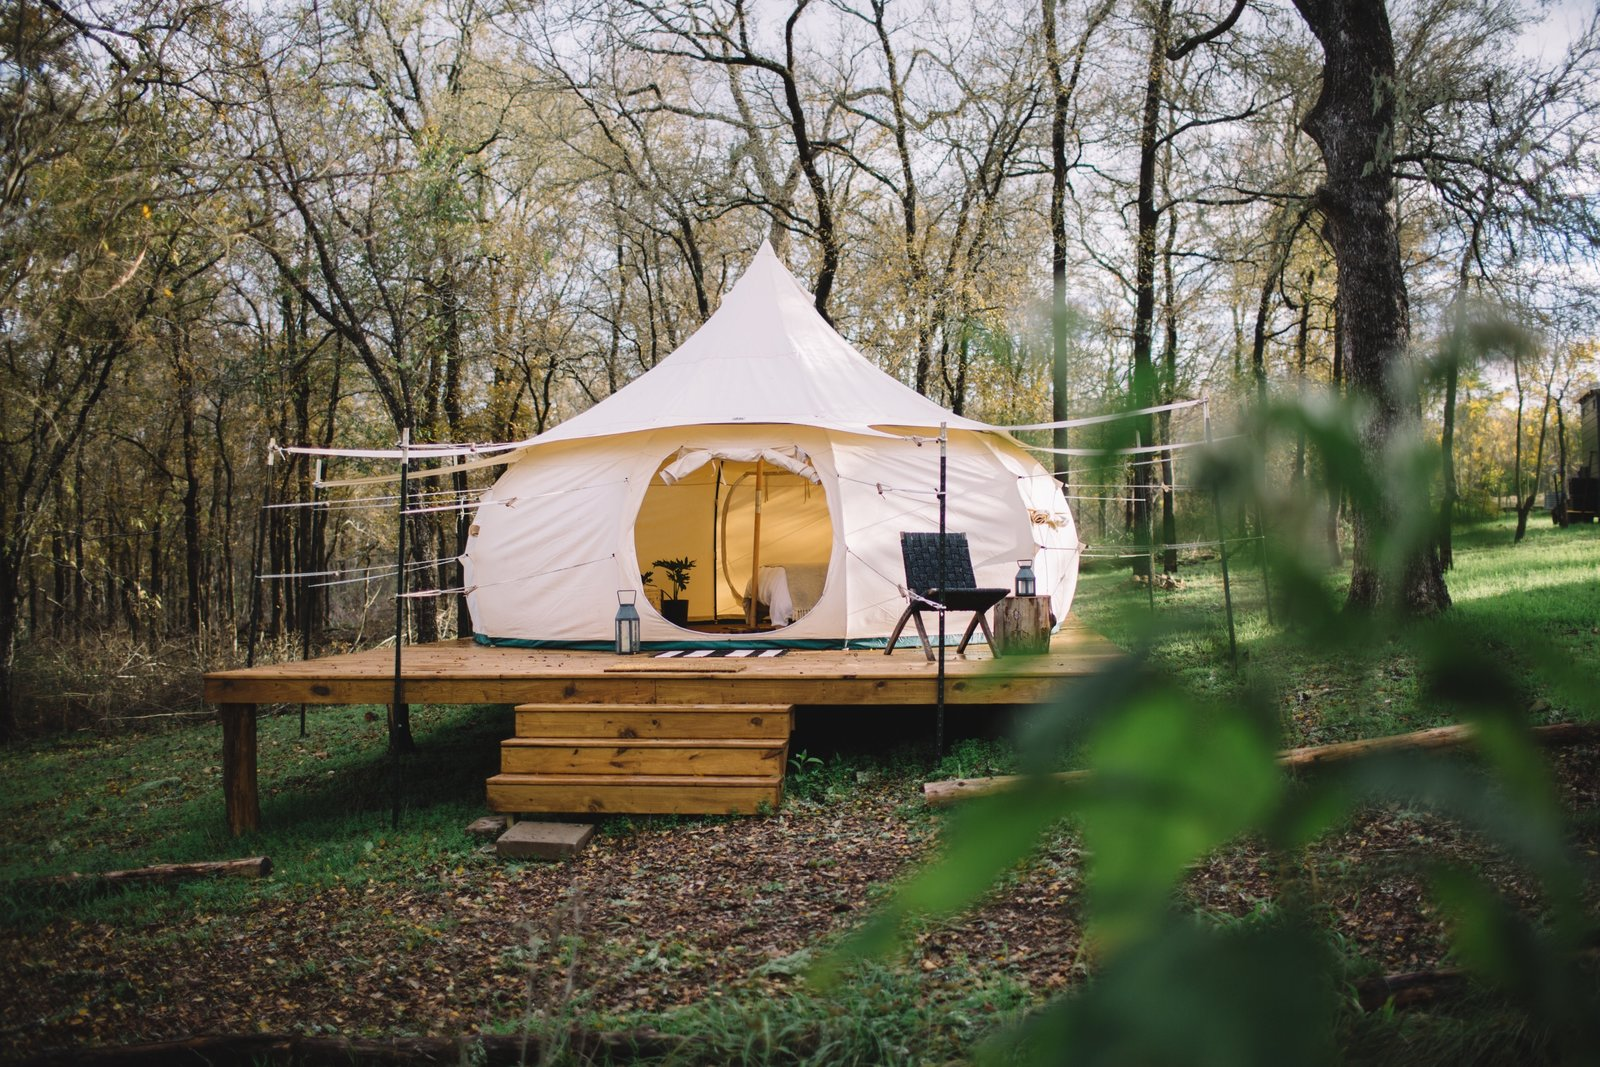 Exterior and Tent Building Type  Photo 1 of 8 in A Texas Camping Spot Complete With Yurts and Miniature Donkeys